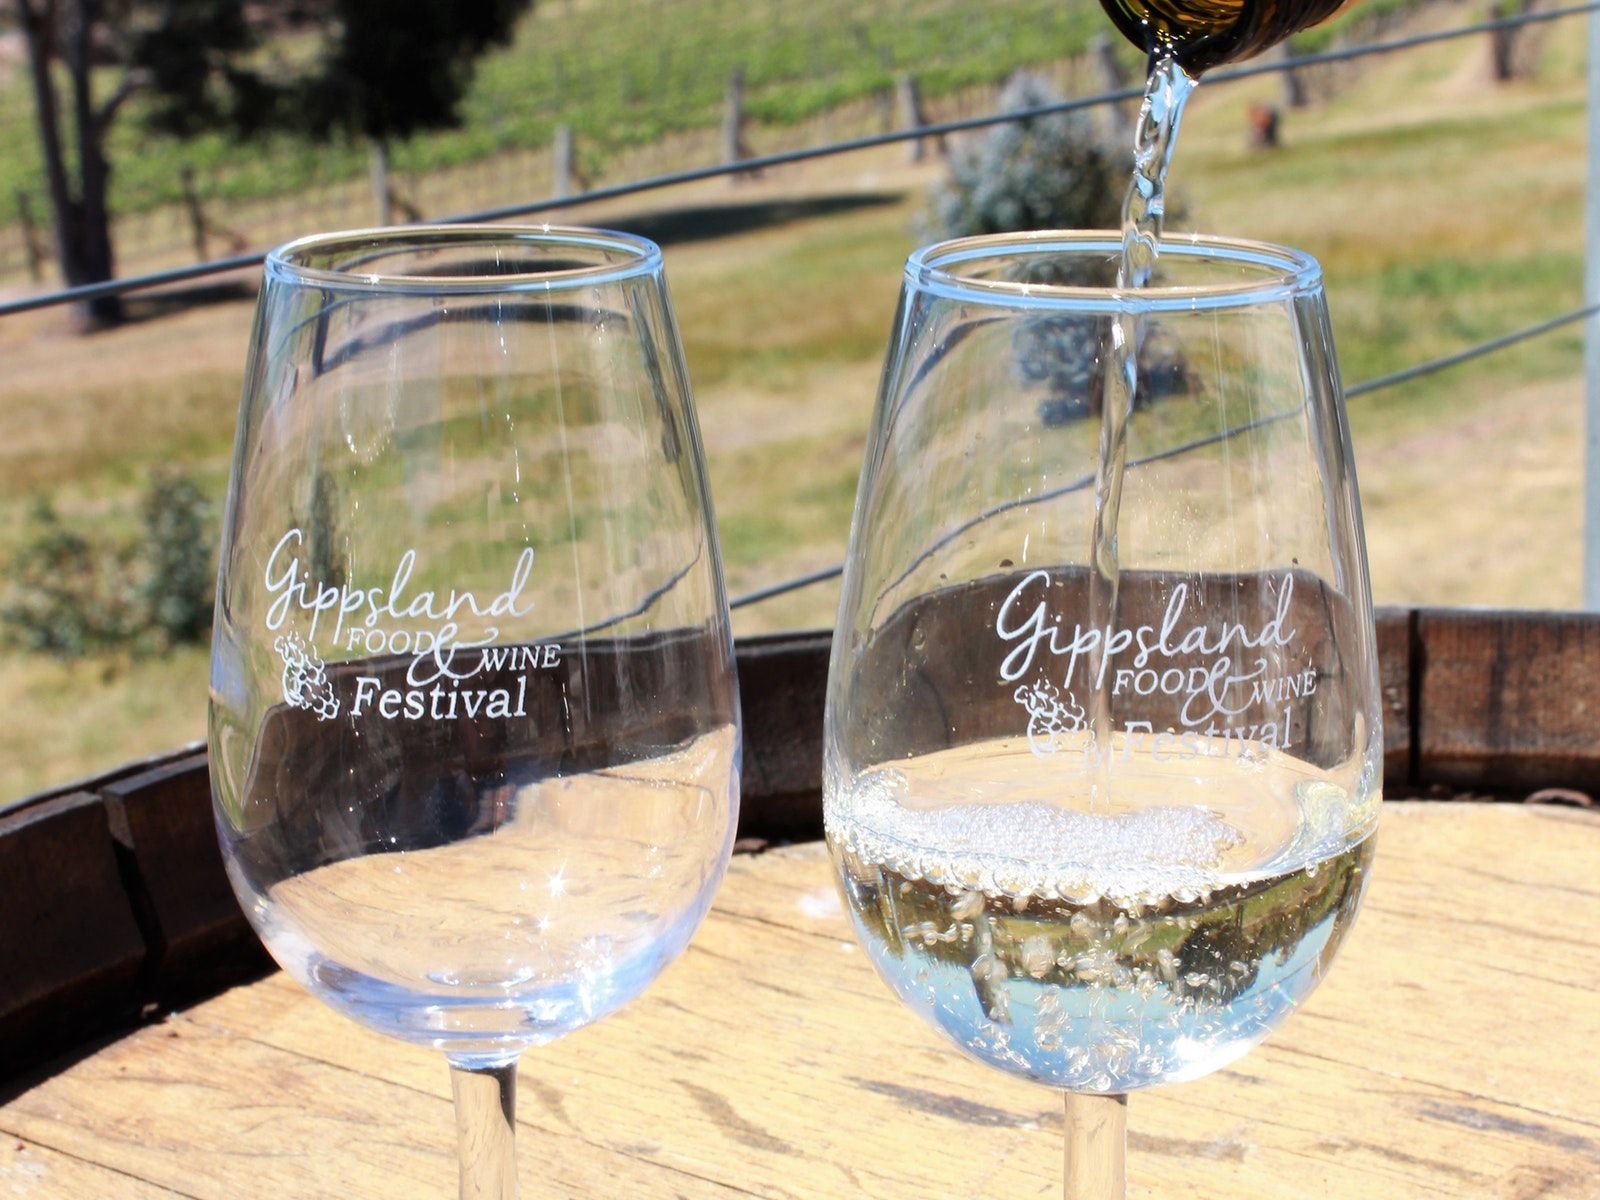 Gippsland Food and Wine Festival